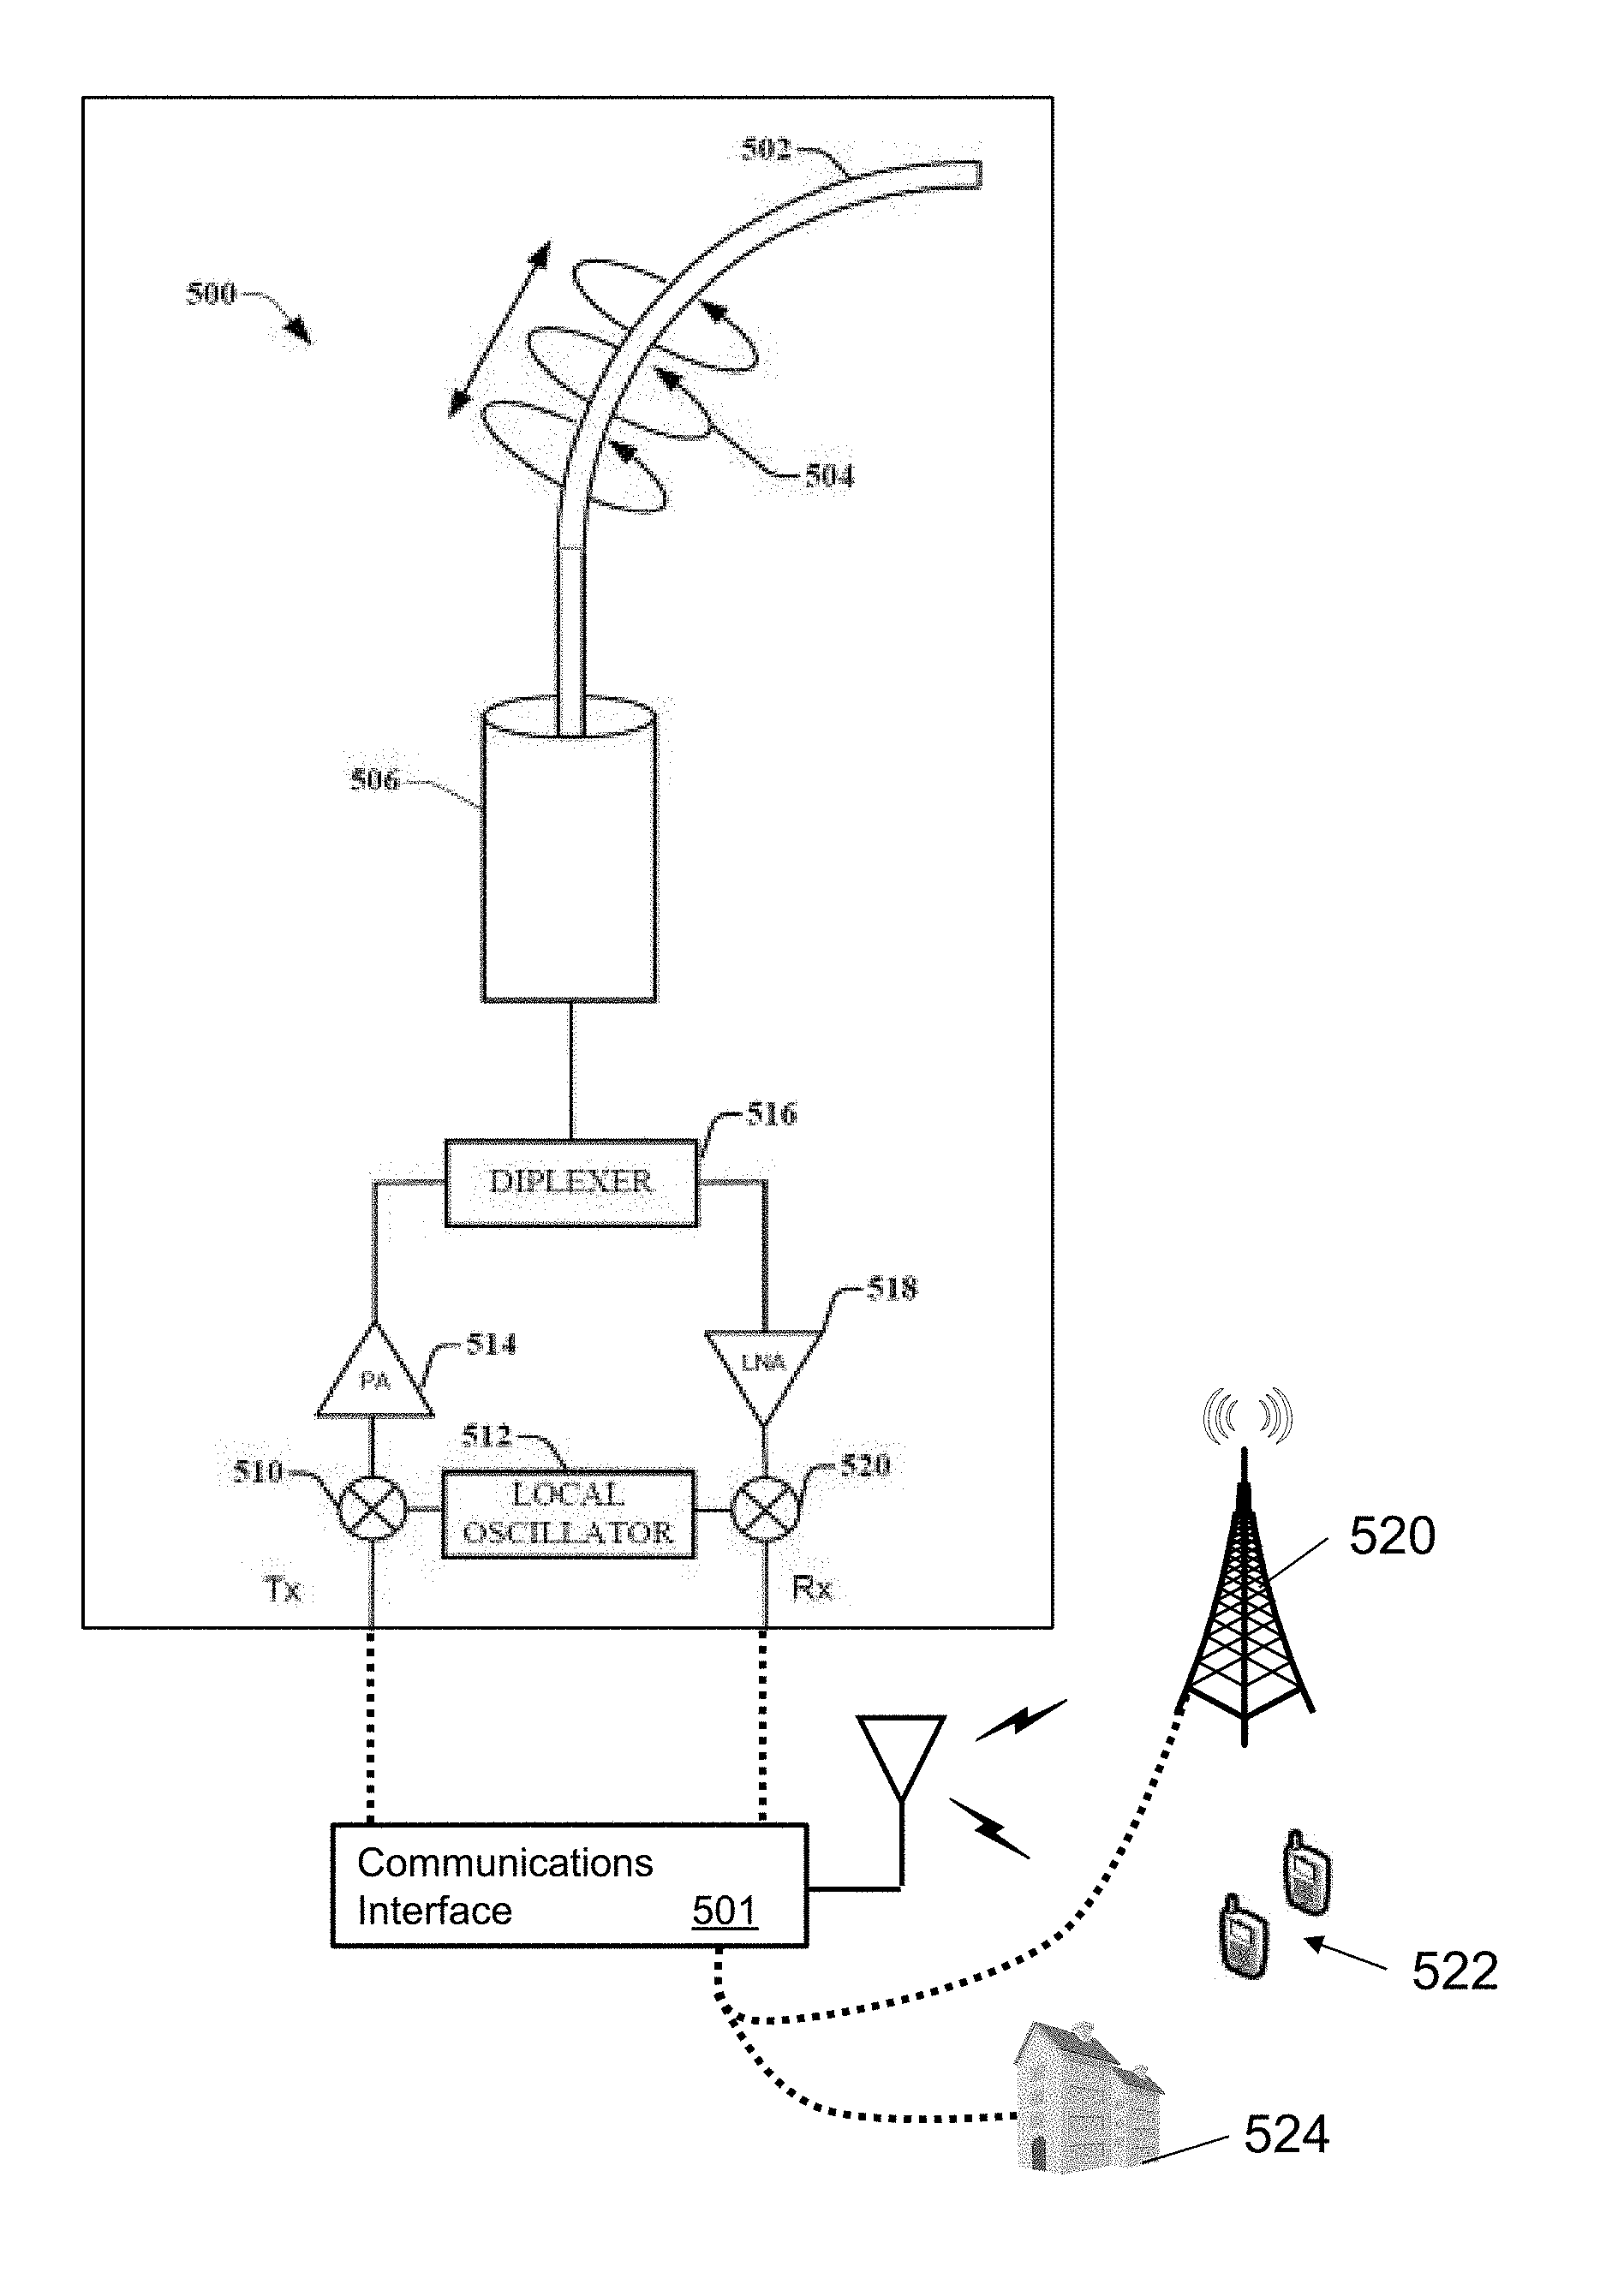 us9876570b2 guided wave transmission device with non fundamental Delta Star Transformer us9876570b2 guided wave transmission device with non fundamental mode propagation and methods for use therewith patents